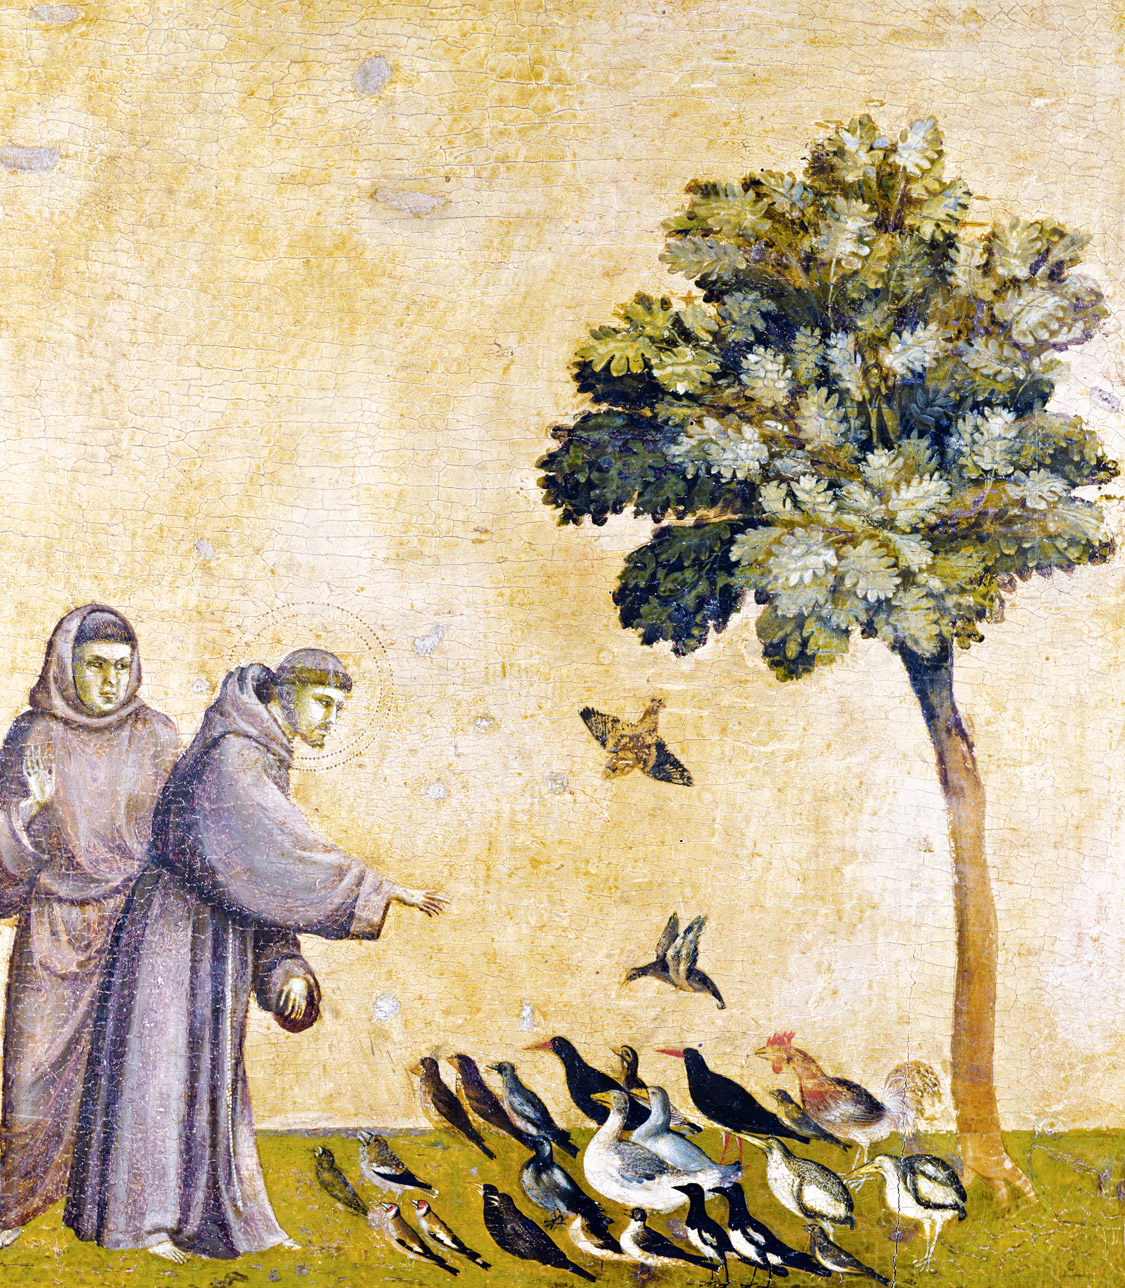 St. Francis preaching to the birds, from St. Francis Receiving the Stigmata, by Giotto di Bondone, c. 1295–1300. Louvre Museum, Paris, France.